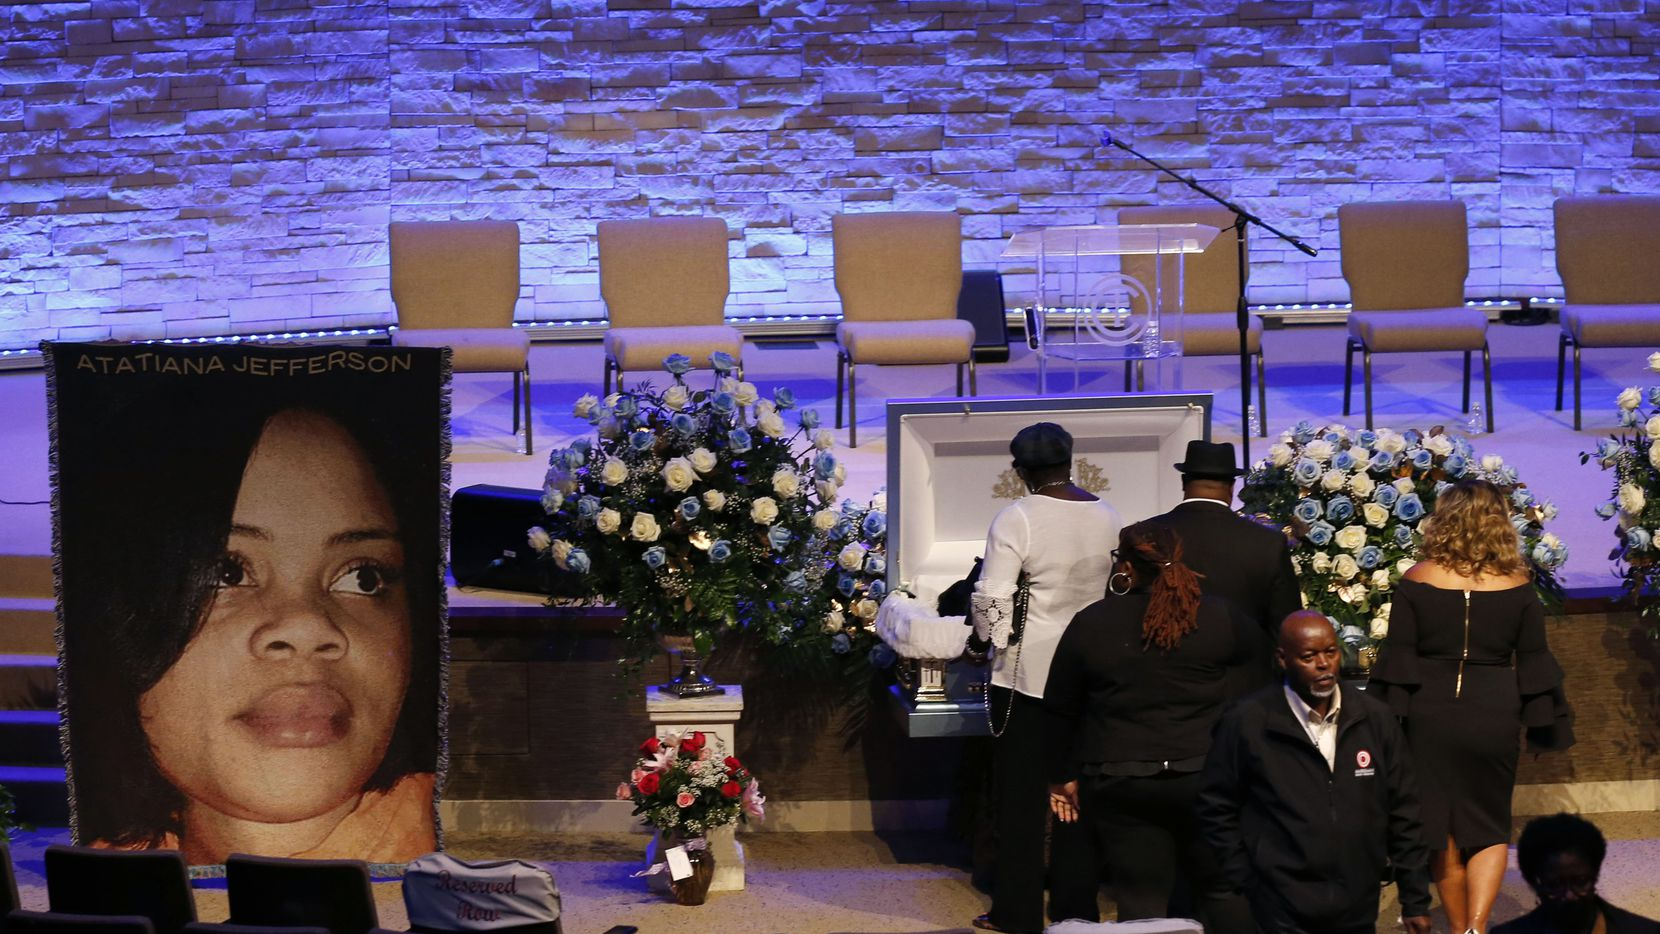 People mourn the loss of Atatiana Jefferson before the start of her funeral at Concord Church in Dallas on Oct. 24, 2019. Jefferson, 28, was fatally shot by a former Fort Worth officer Aaron Dean on Oct. 12.